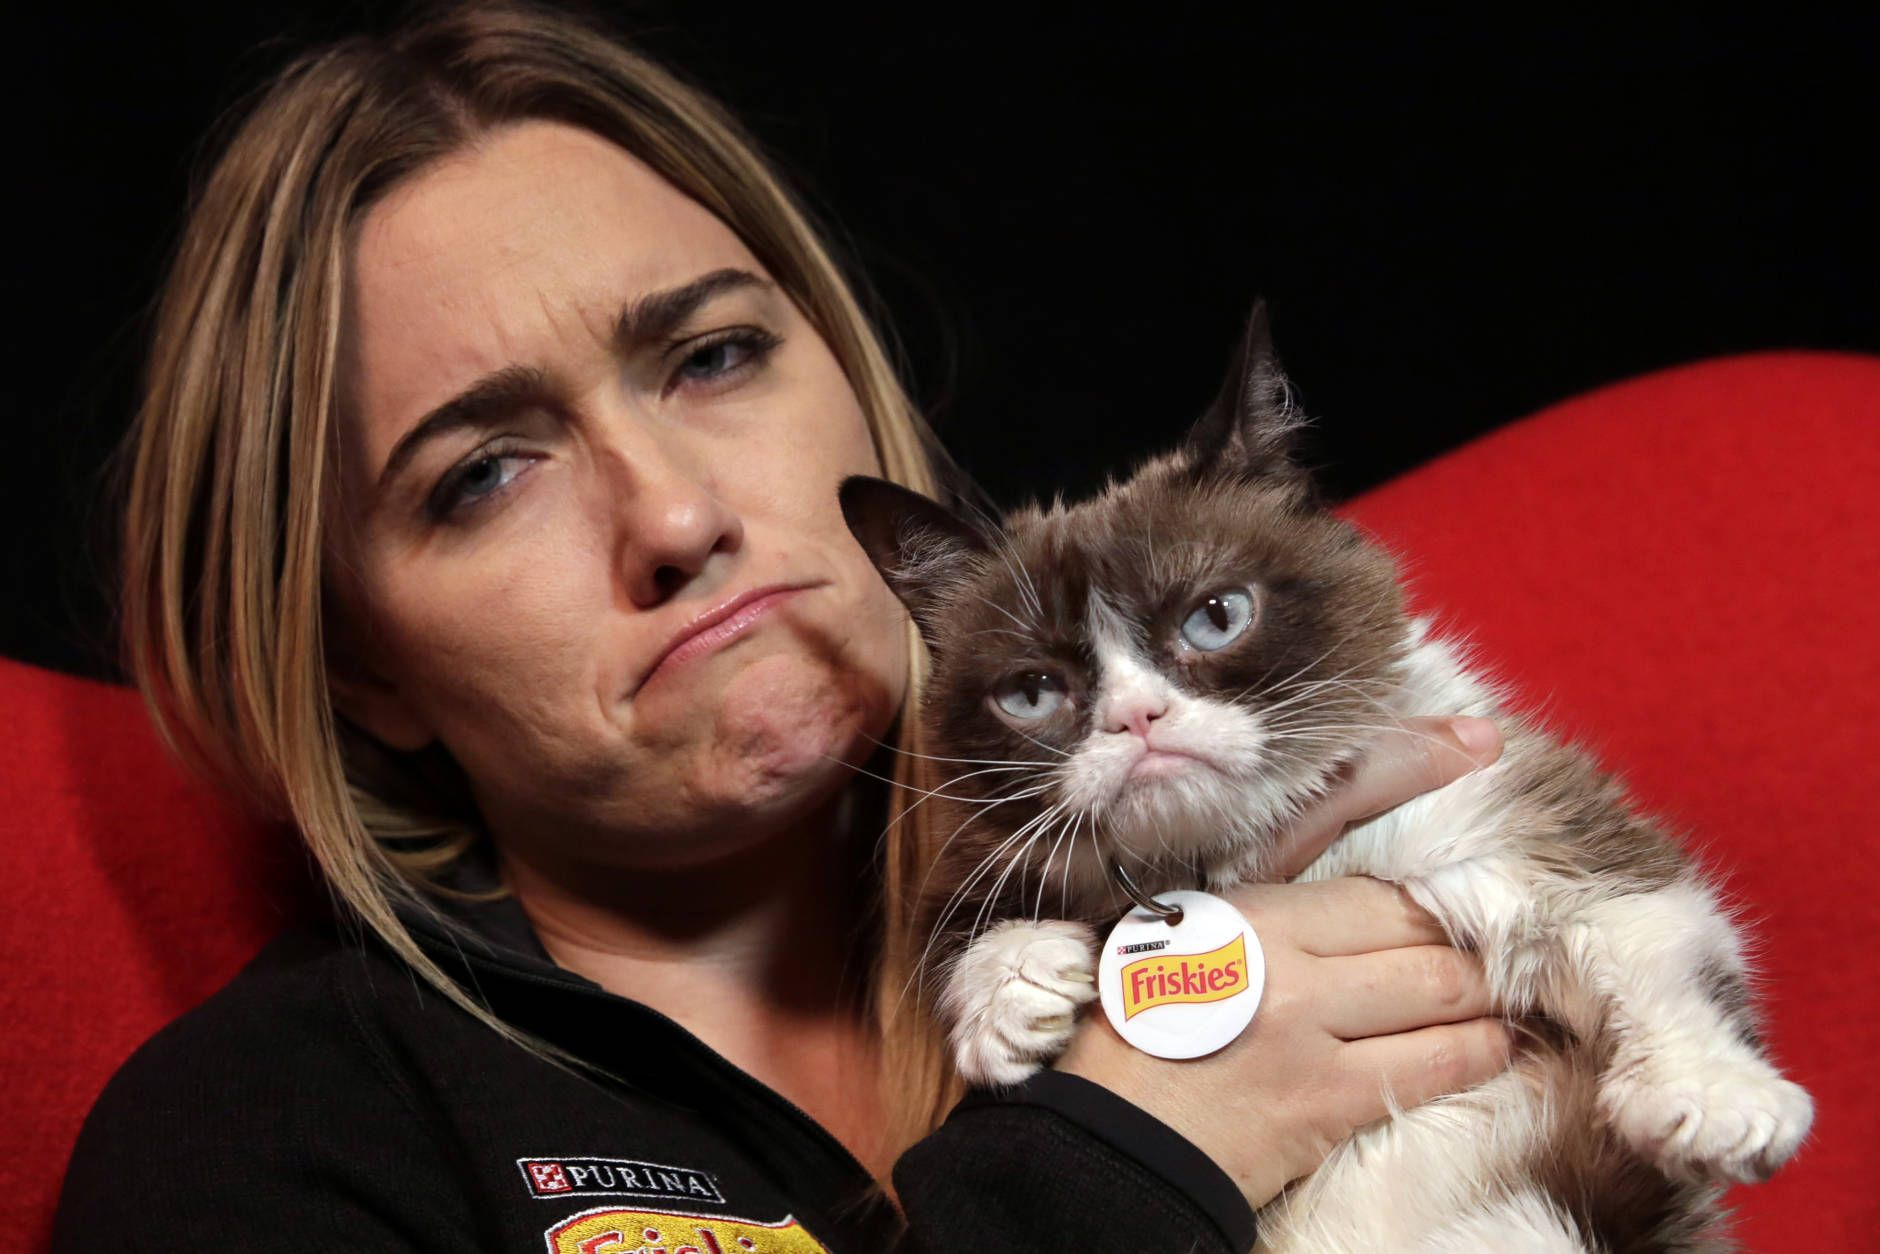 Grumpy Cat, grouchyfaced furball that launched a thousand